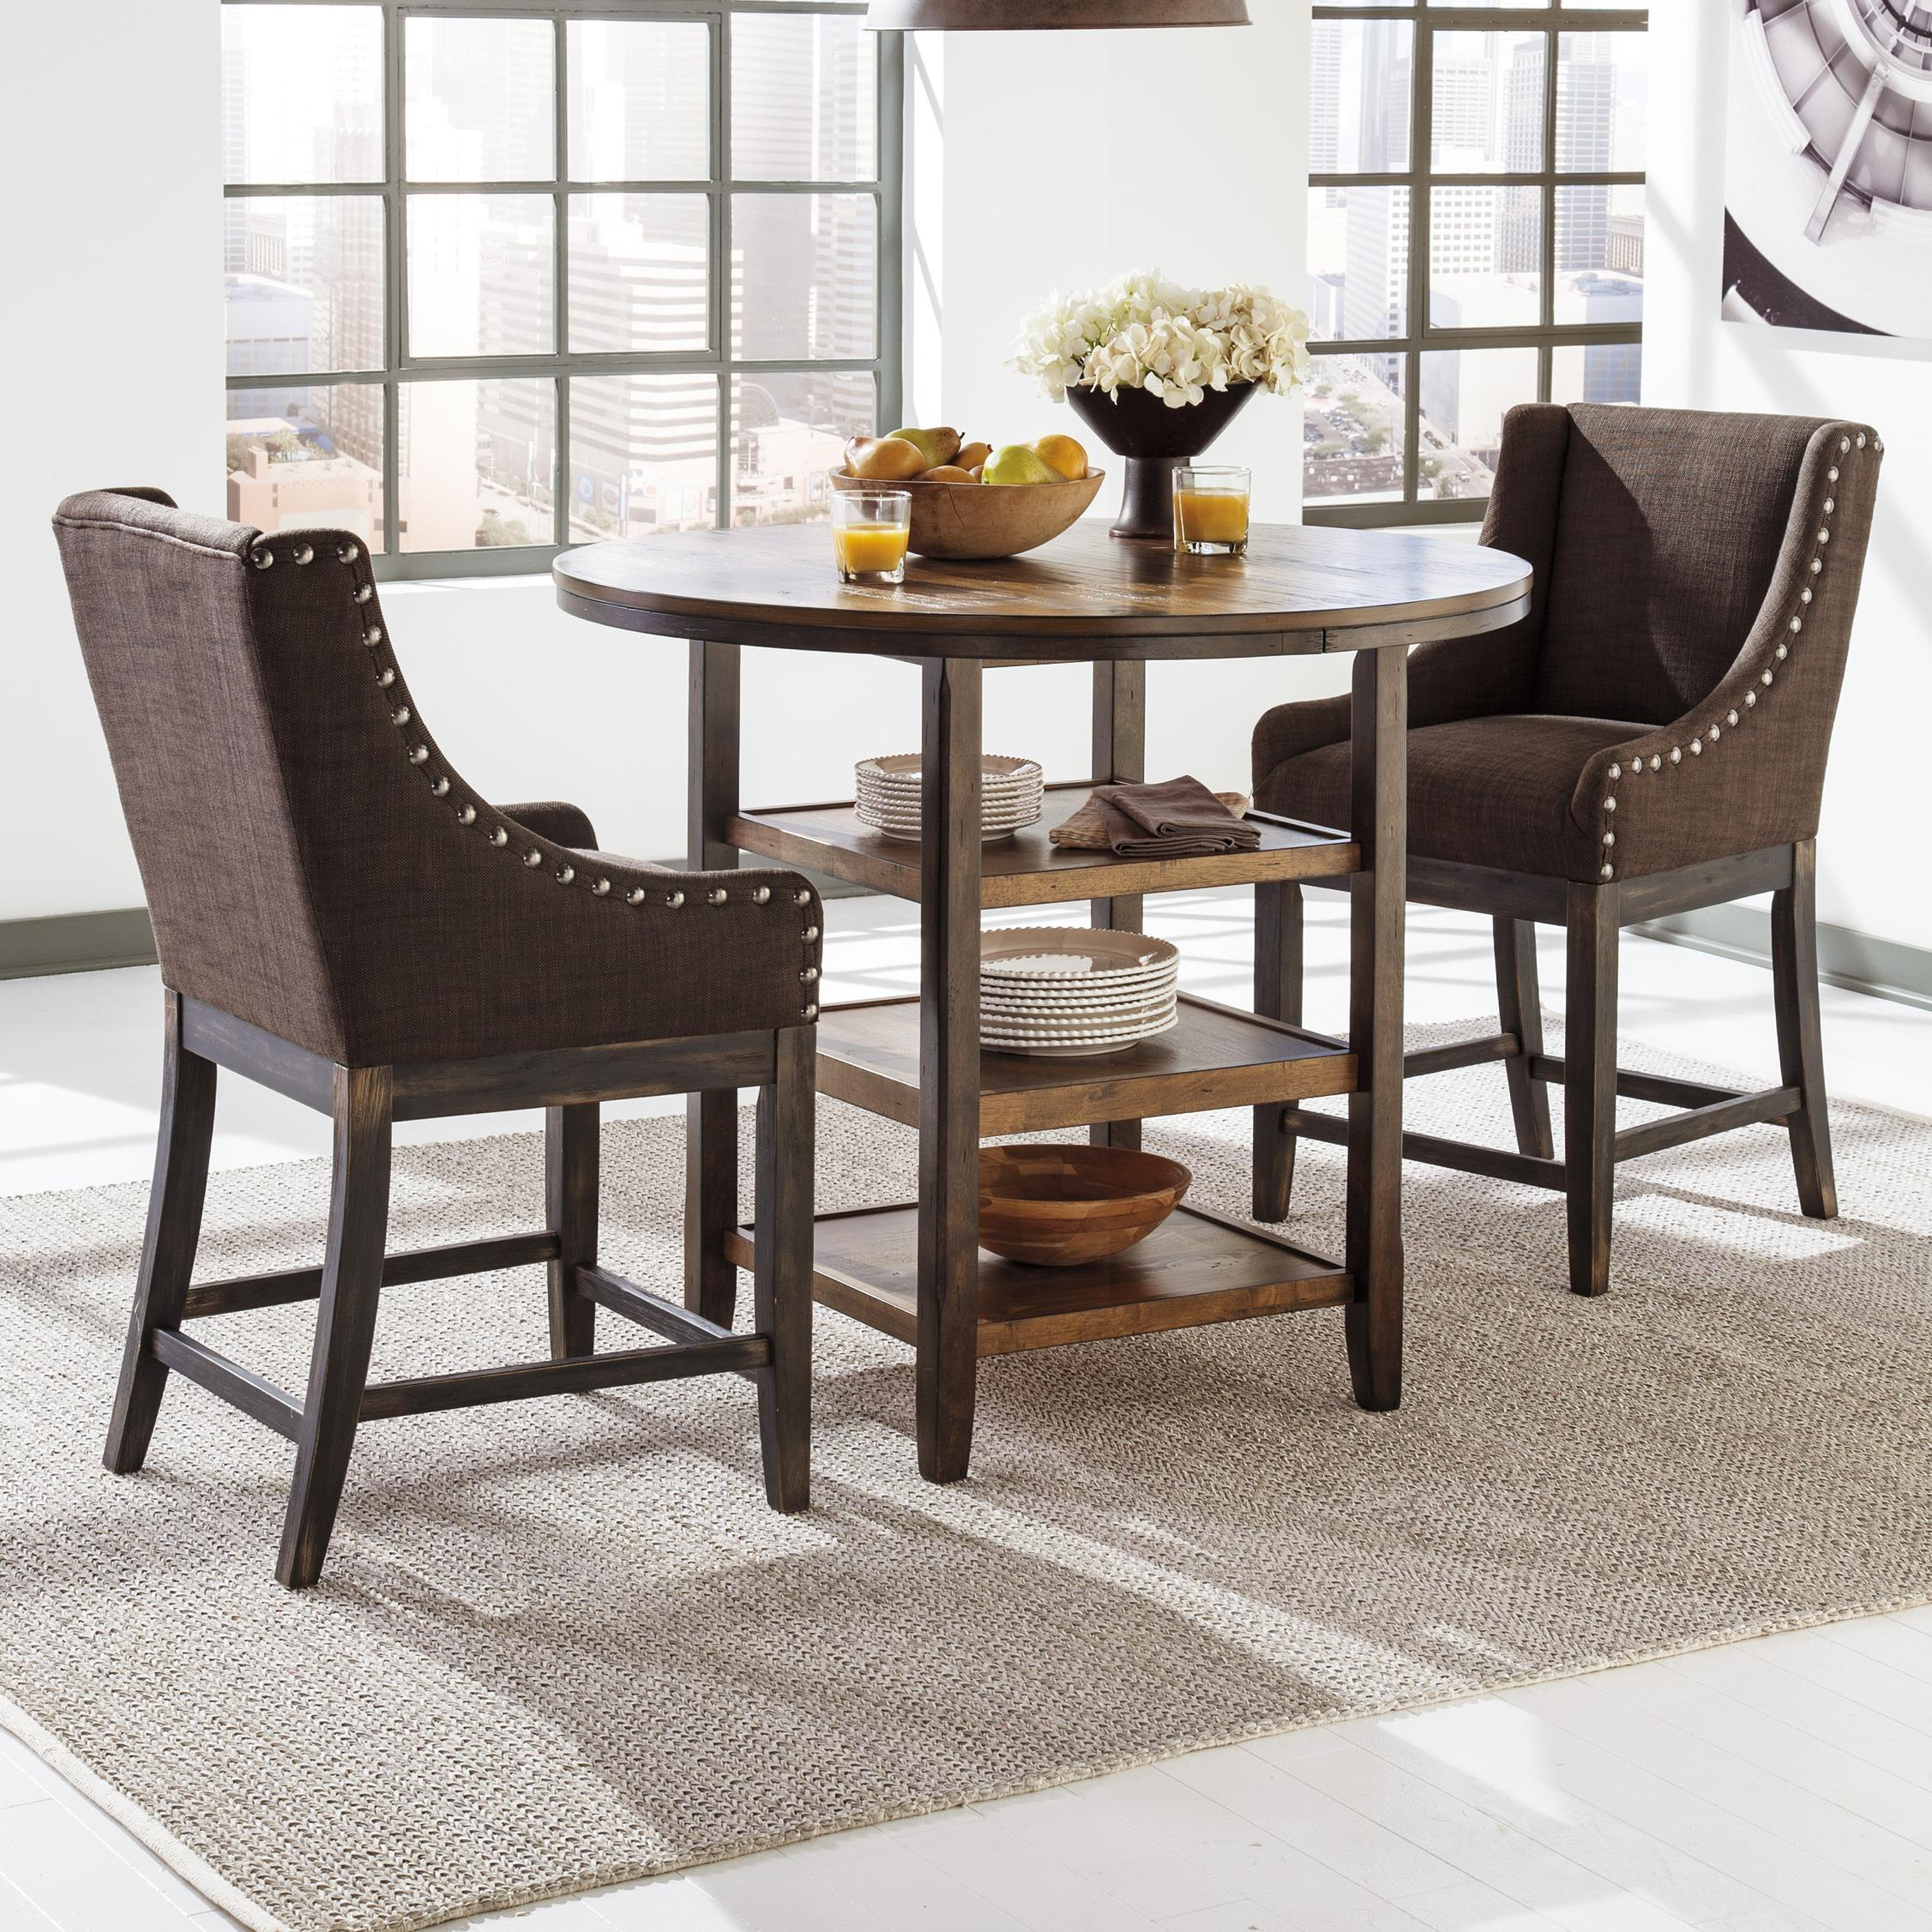 Signature Design by Ashley Moriann 3-Piece Counter Table Set - Item Number: D608-13+2x424